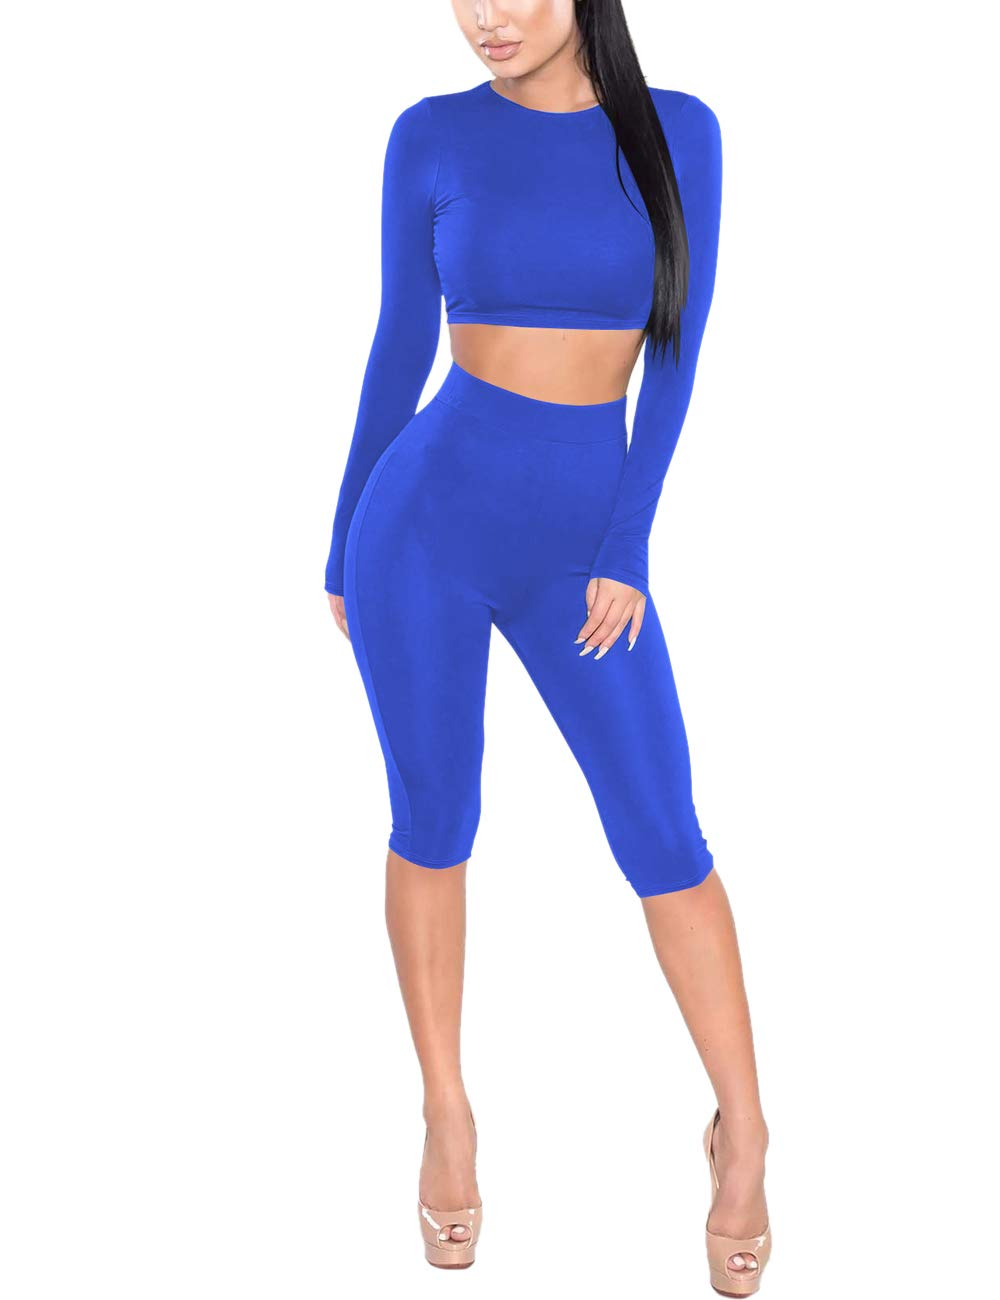 Amilia Womens Sexy Long Sleeve Crop Tops High Waist Leggings 2 Piece Bodycon Set Casual Outfit Tracksuit (M, Royal Blue)